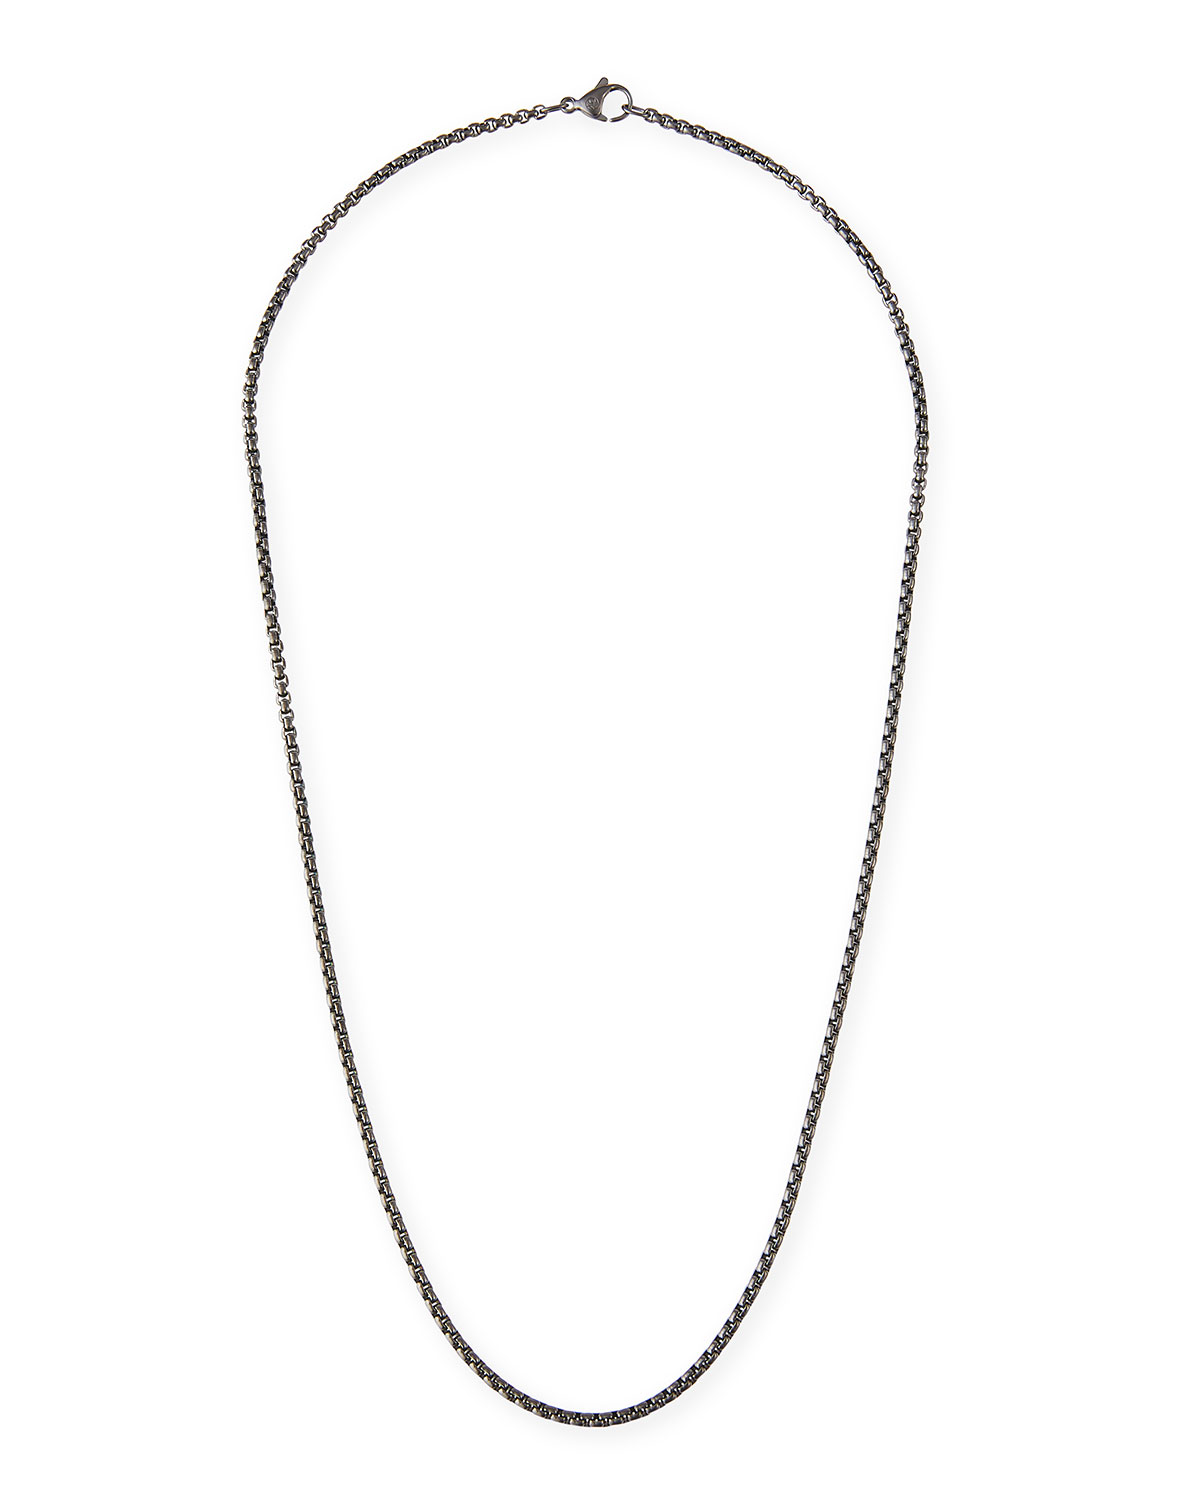 e43fbb1c836af David Yurman Men s 2.7mm Small Box Chain Necklace